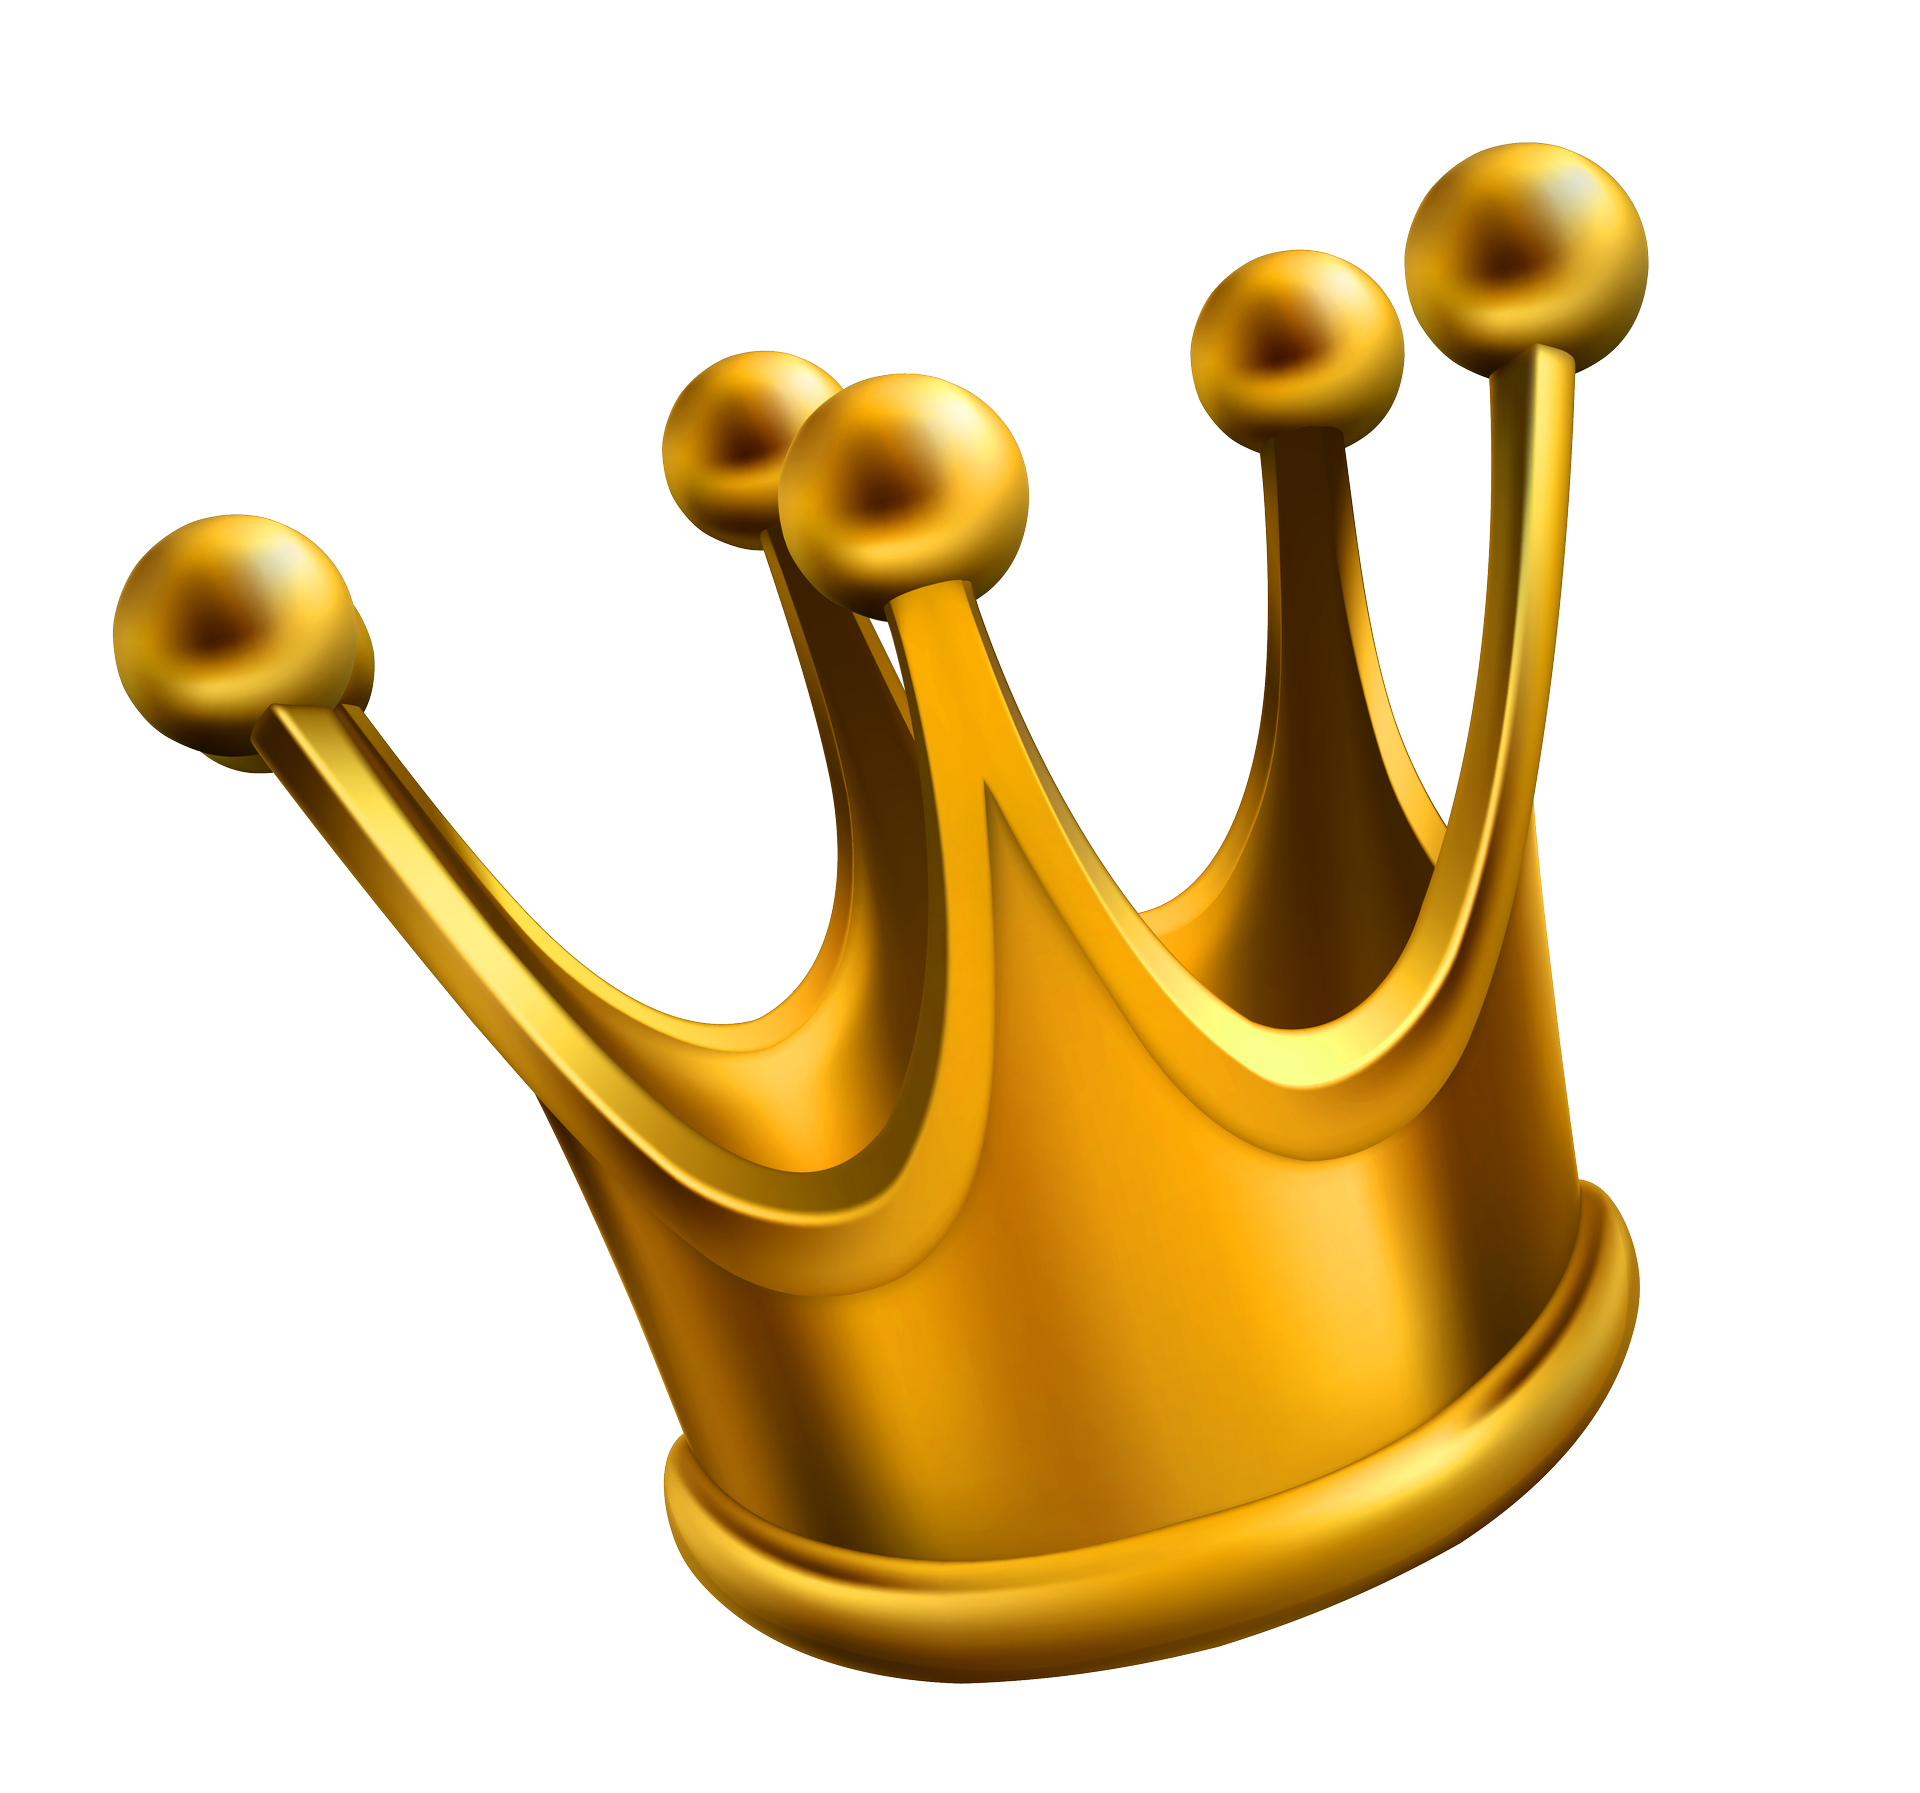 Queen's crown clipart jpg free Crown Clipart at GetDrawings.com | Free for personal use Crown ... jpg free